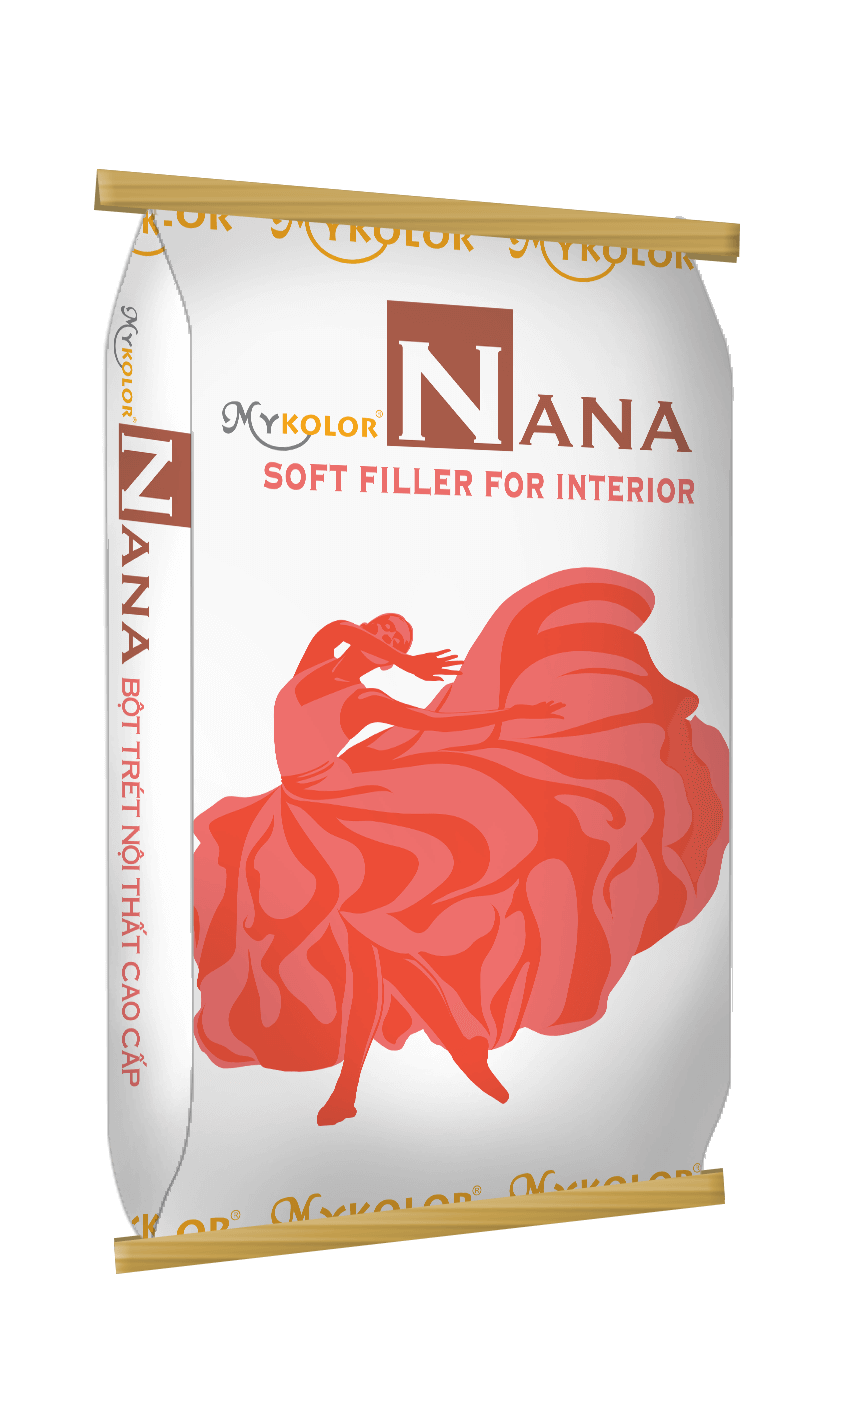 MYKOLOR NANA  SOFT FILLER  FOR INTERIOR